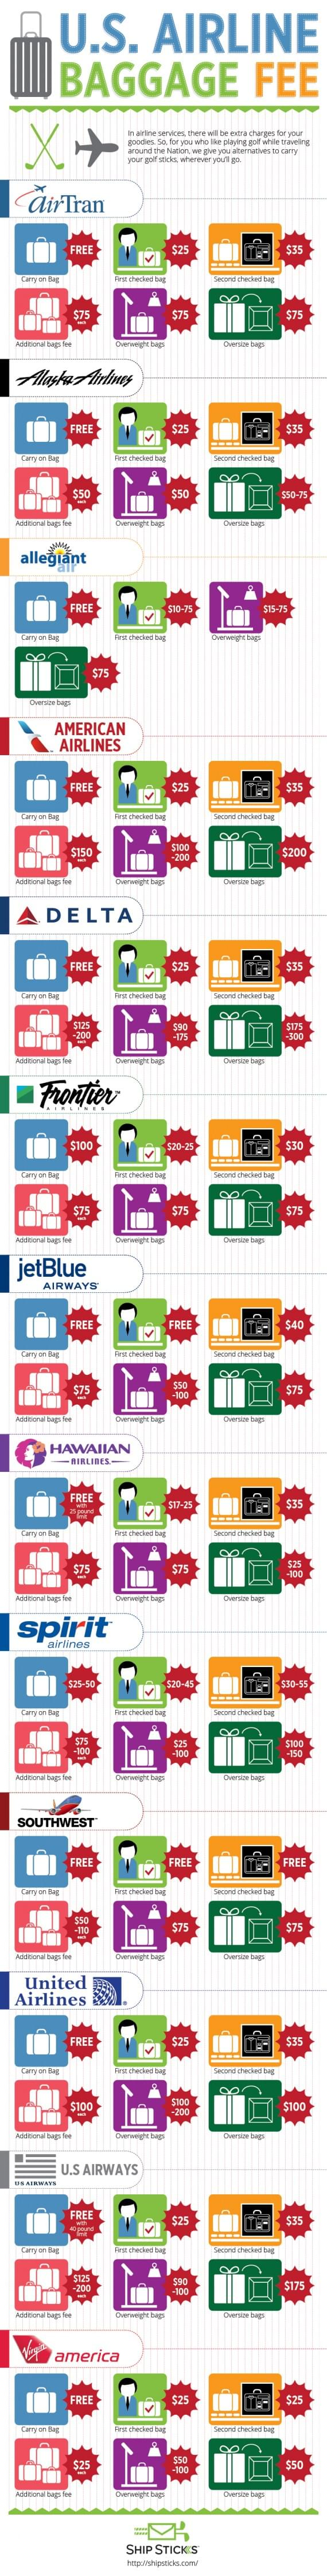 U.S. Airline Baggage Fees